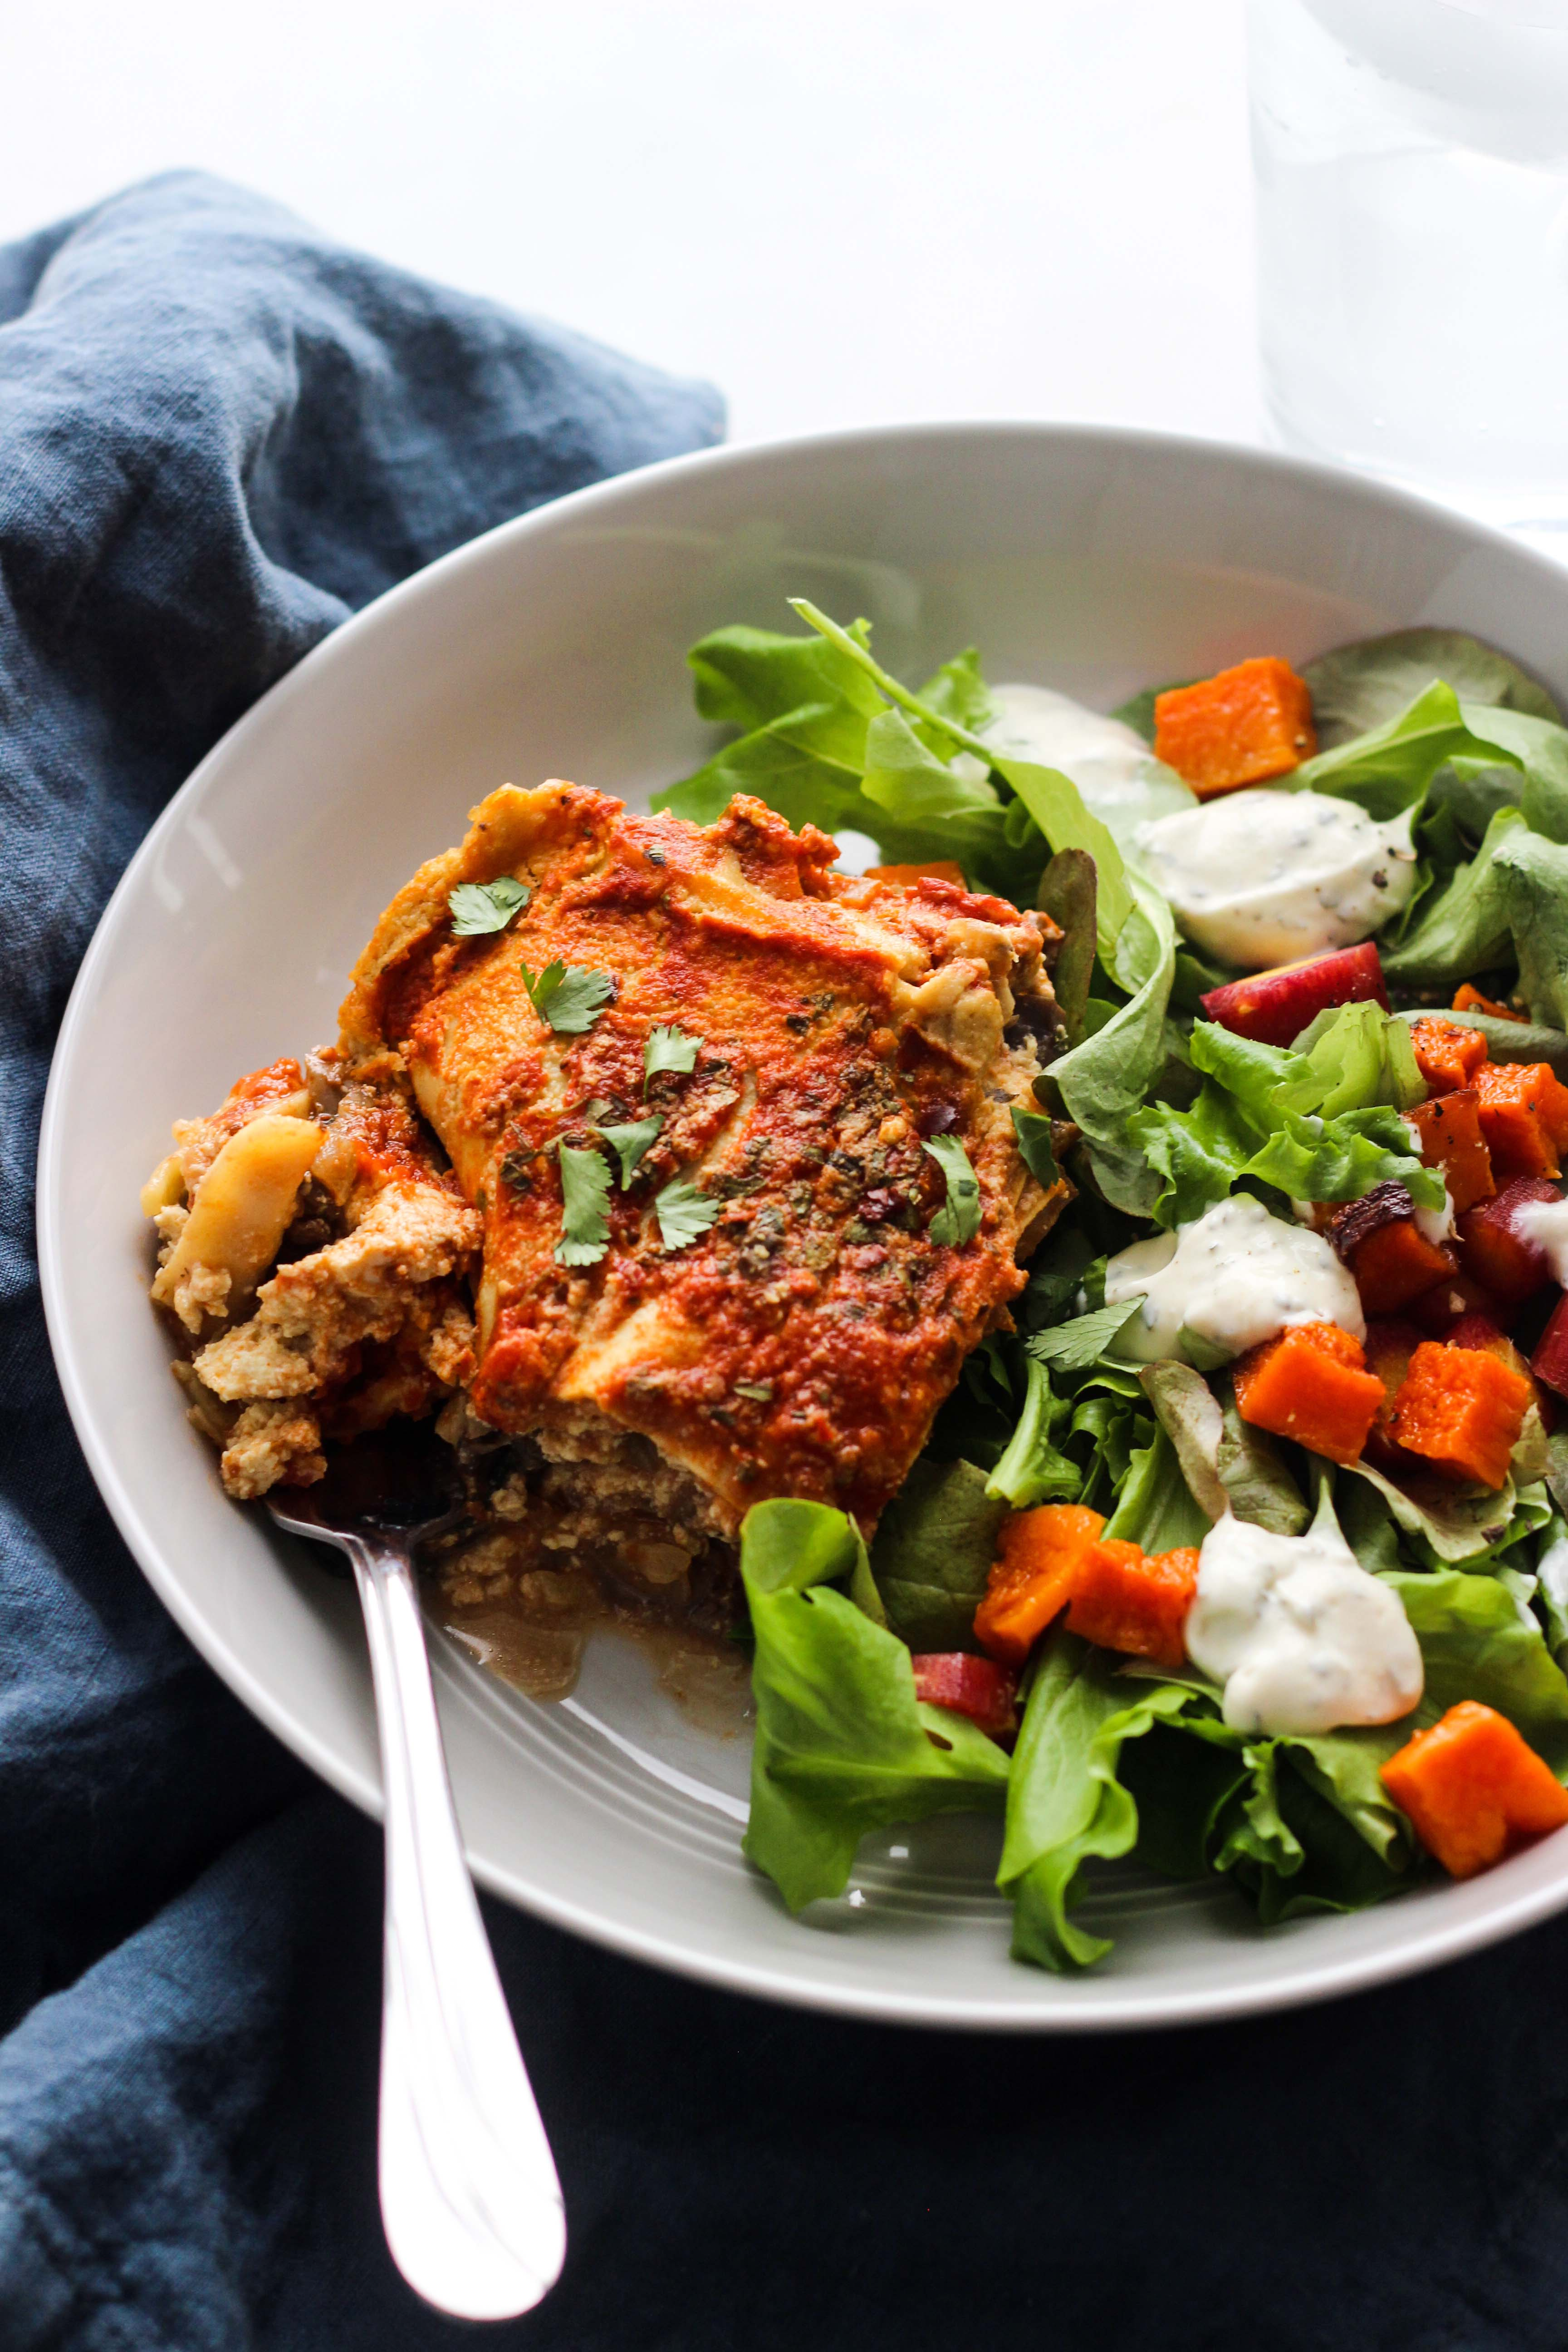 Vegan Spinach and Mushroom Lasagna on plate with salad